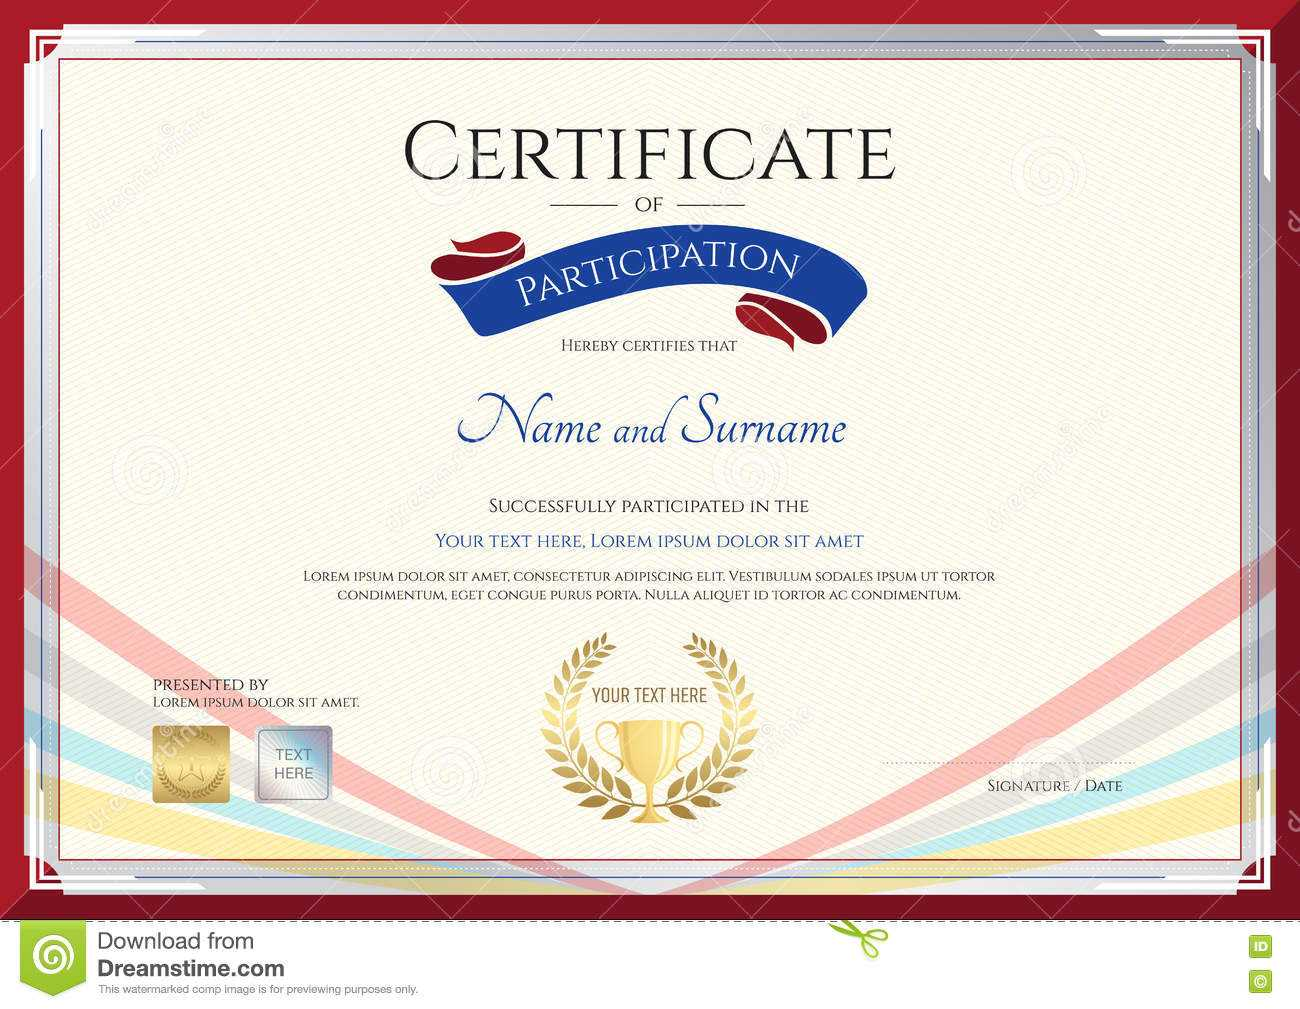 Certificate Template For Achievement, Appreciation Or Throughout International Conference Certificate Templates